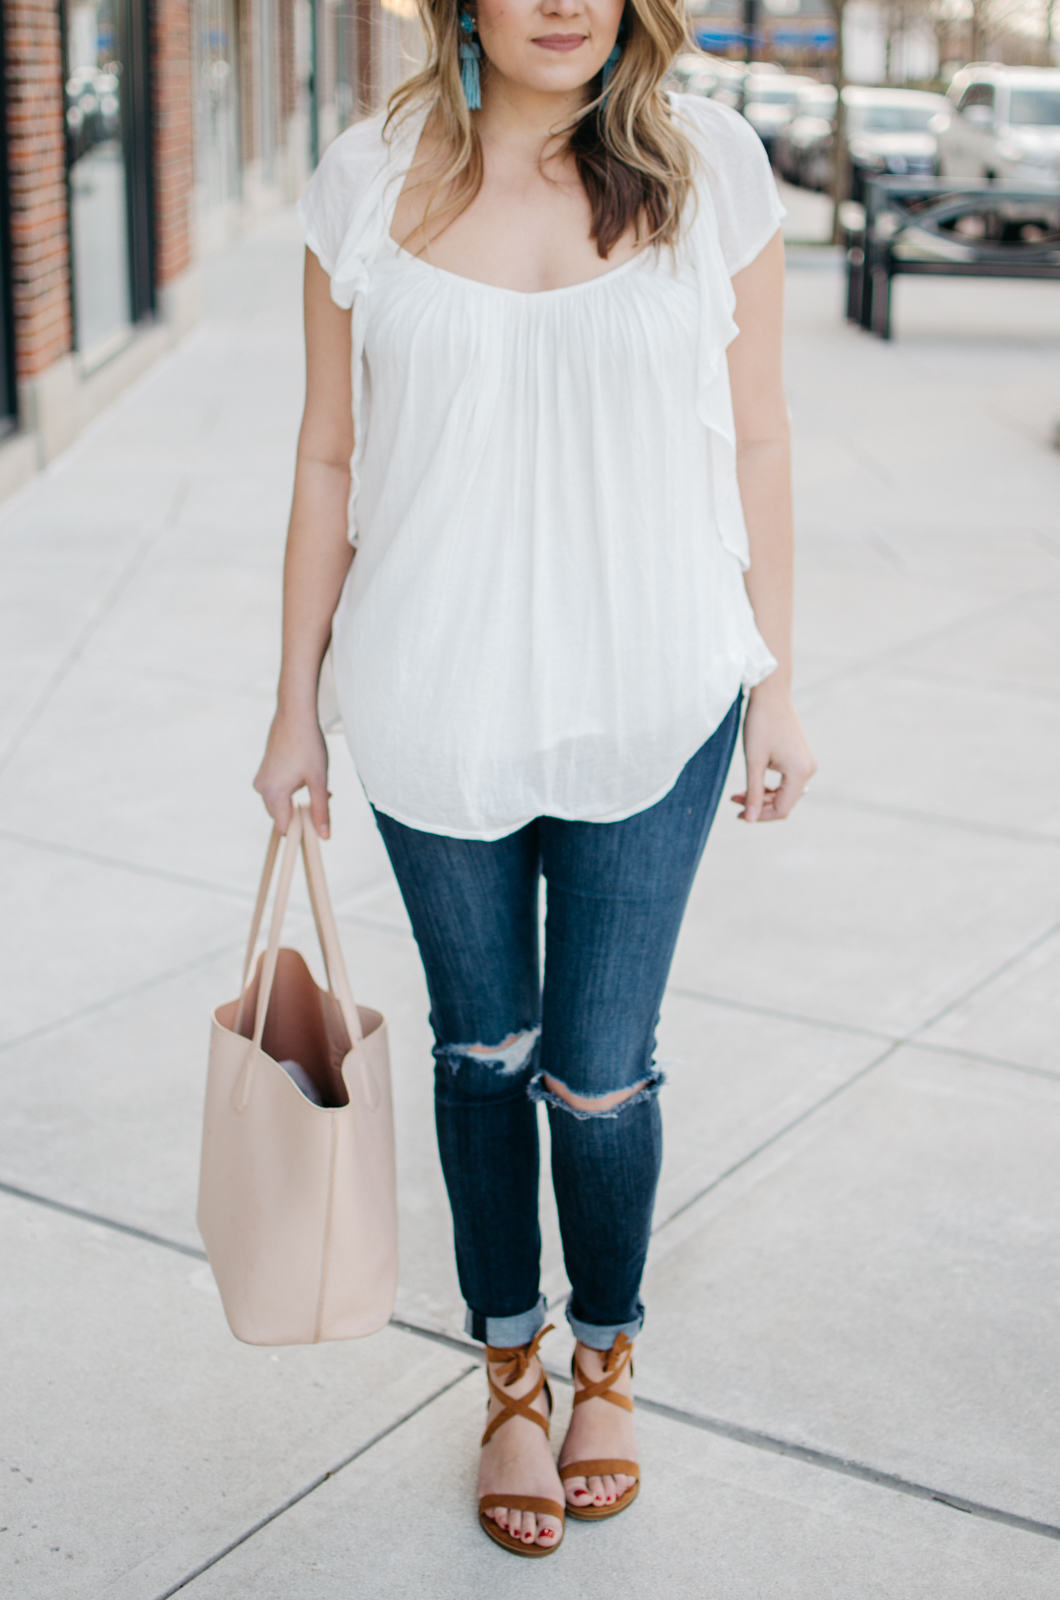 what to wear for spring - | Click through for more spring outfit ideas or to shop the look! www.bylaurenm.com